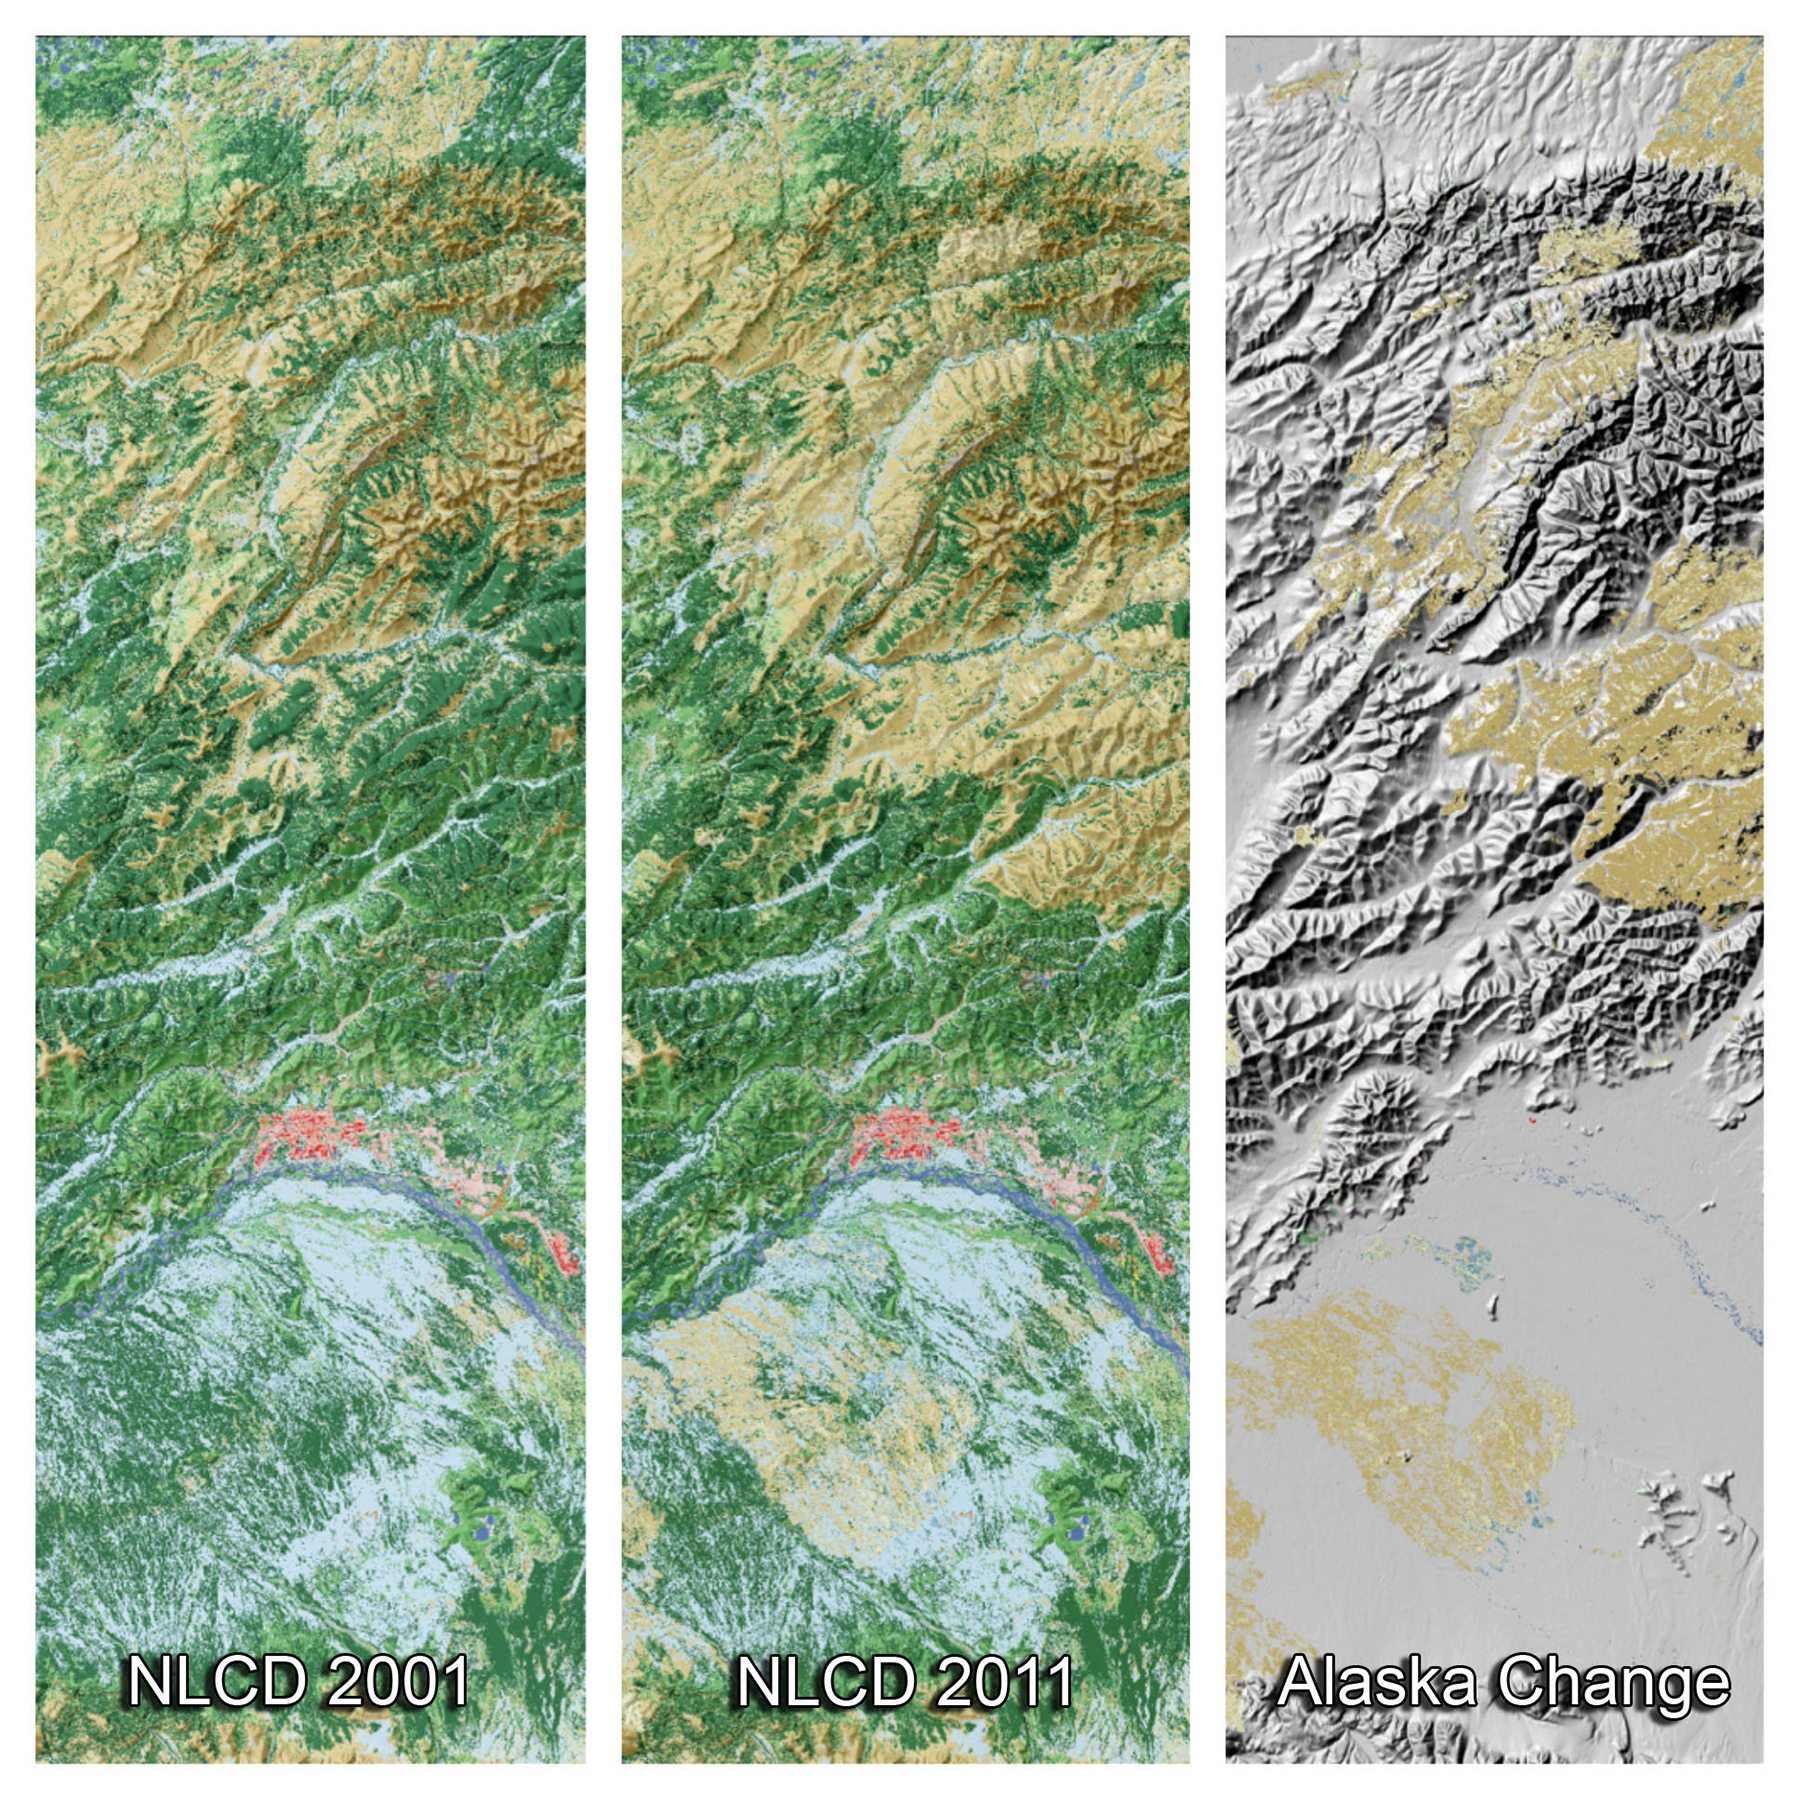 These three panels from the National Land Cover Database depict land cover change in the vicinity of Fairbanks, Alaska, from 2001 to 2011: (left) land cover in 2001 (forests in green, shrublands in brown, wetlands in blue, and urban in red); (middle) the updated land cover in 2011; and (right) areas where change occurred over this 10-year period, primarily as a result of wildfire, which converted large areas of forests to shrub and grasslands (shades of light brown in the right panel). Approximately 1 million acres burn across Alaska each year.